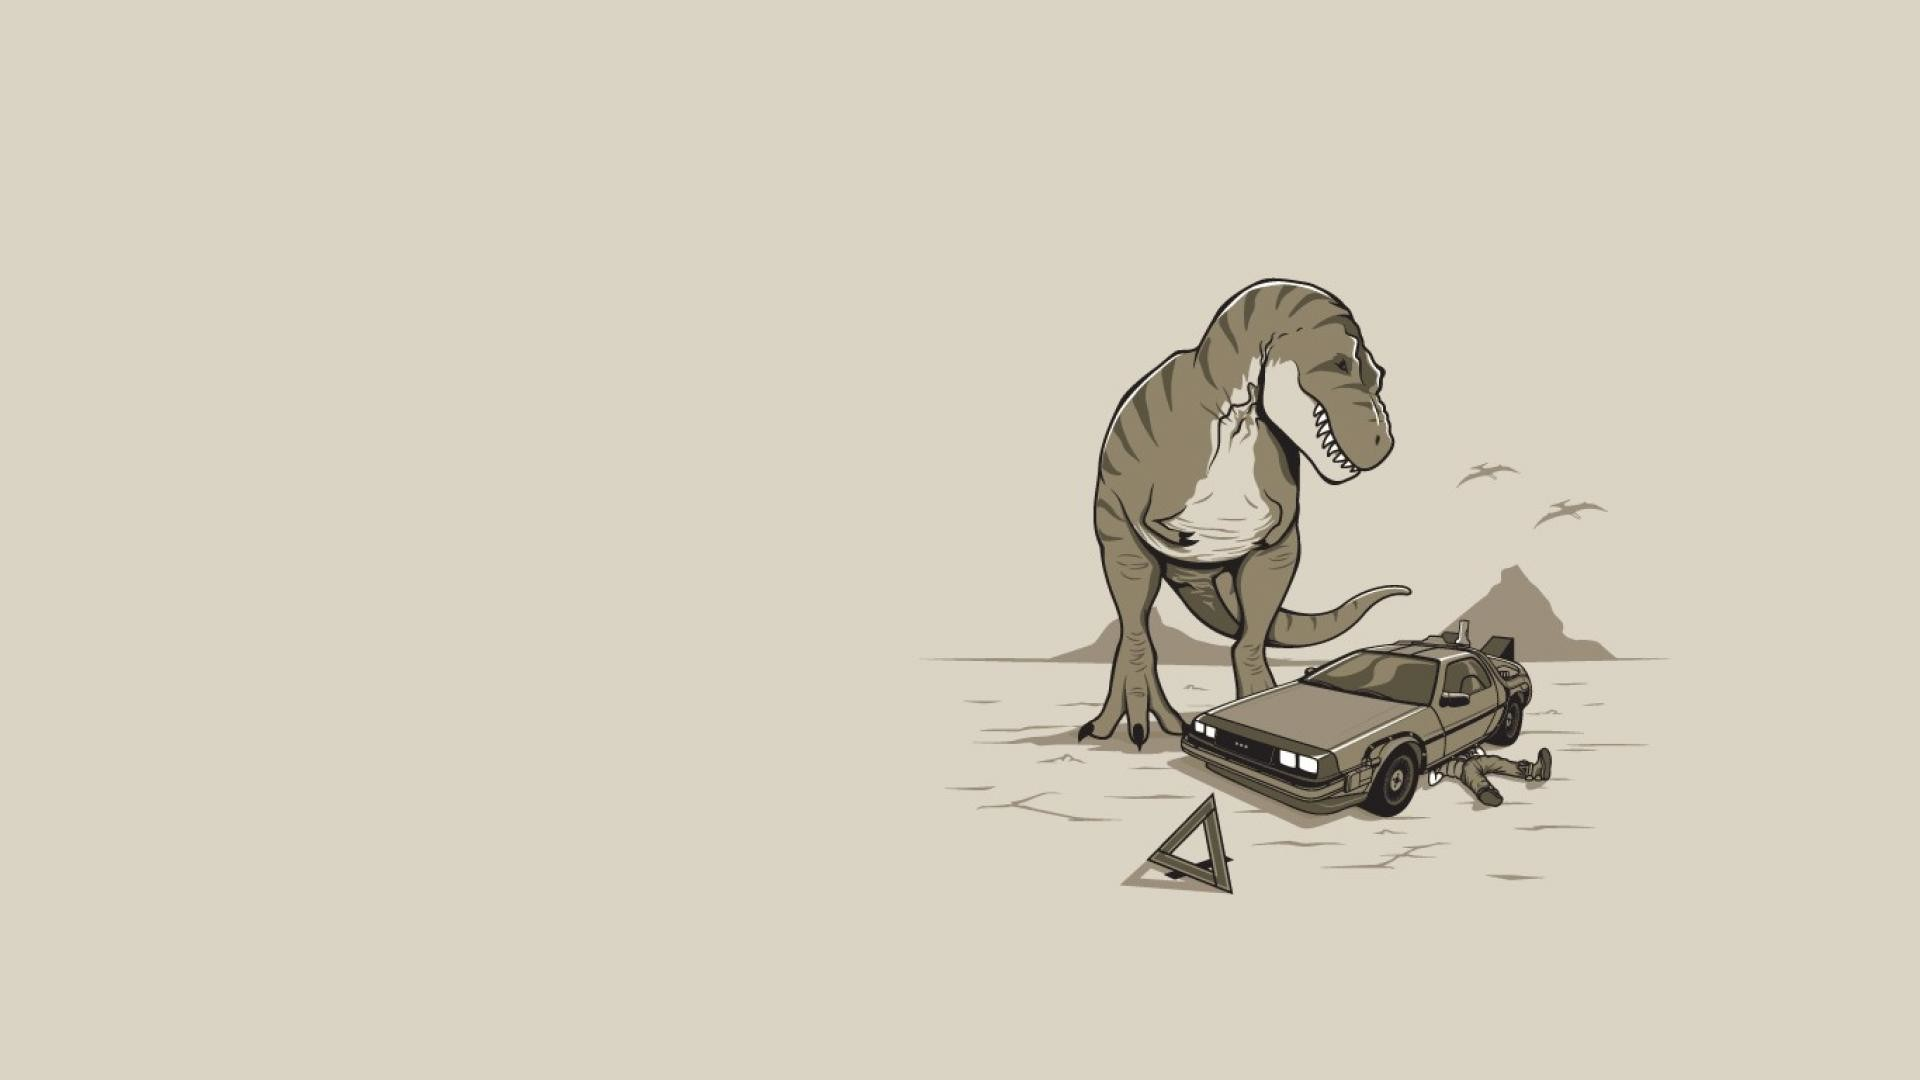 1920x1080 Delorean back to the future fun art wallpaper